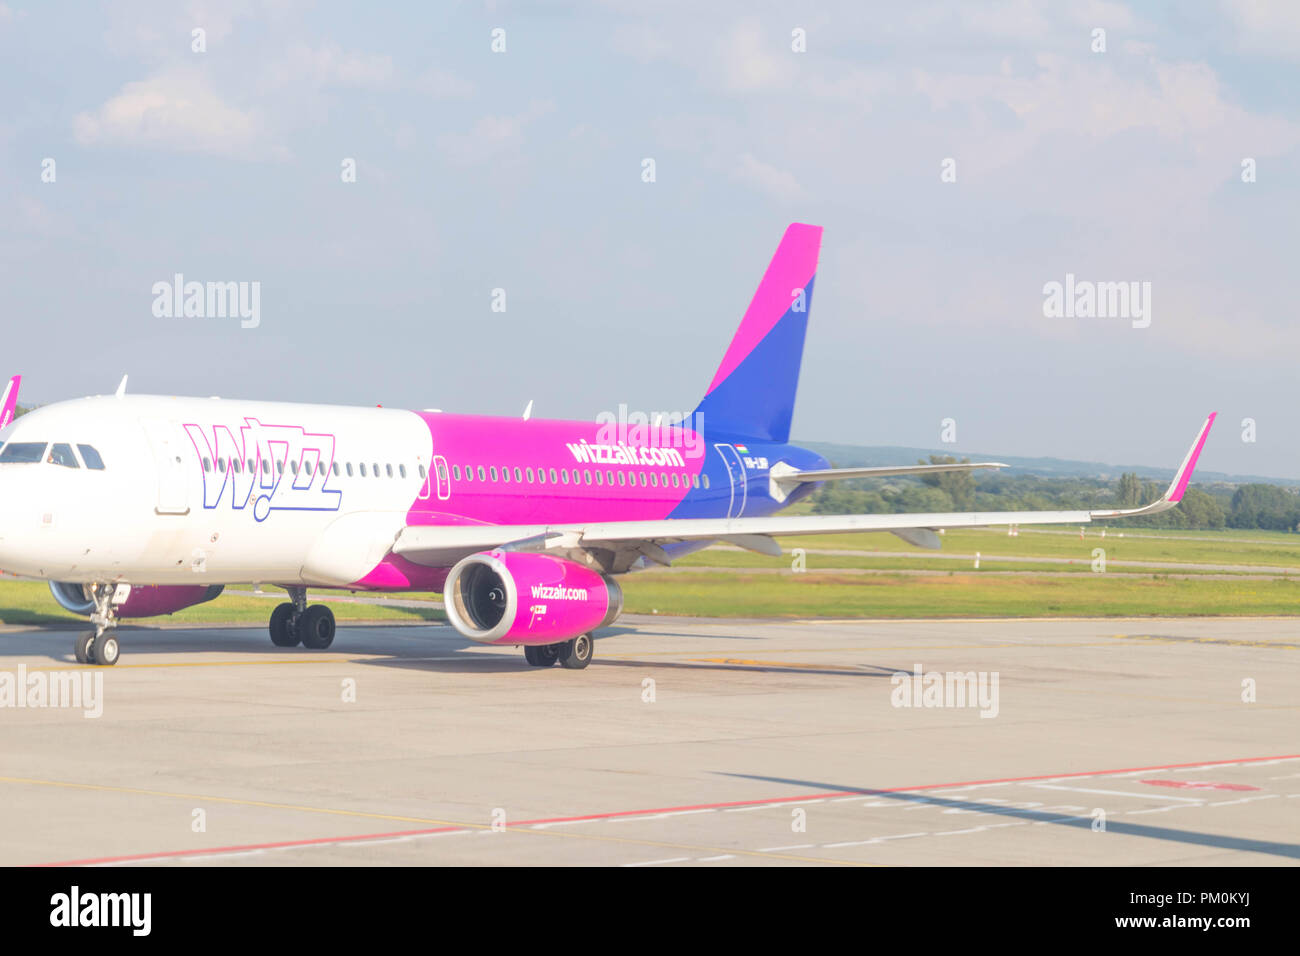 Wizz W!zz air airline airplane airport - Stock Image